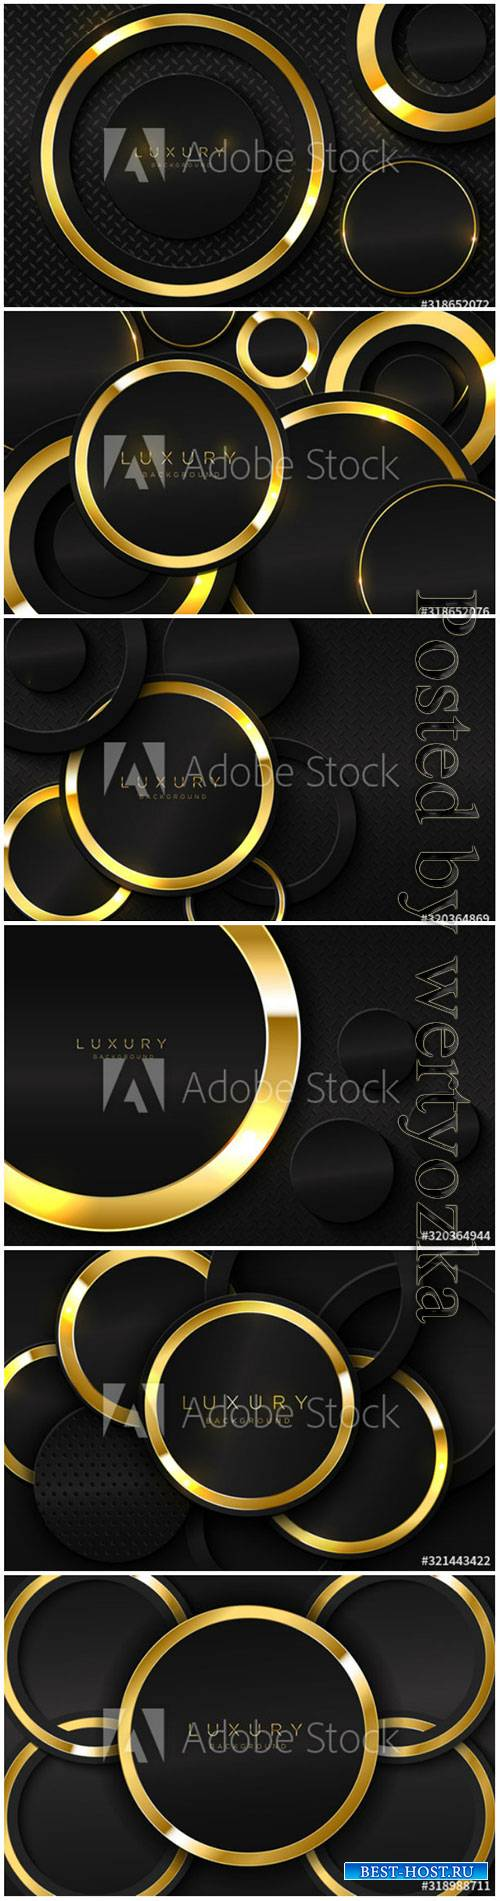 Realistic background with shiny gold ring shape